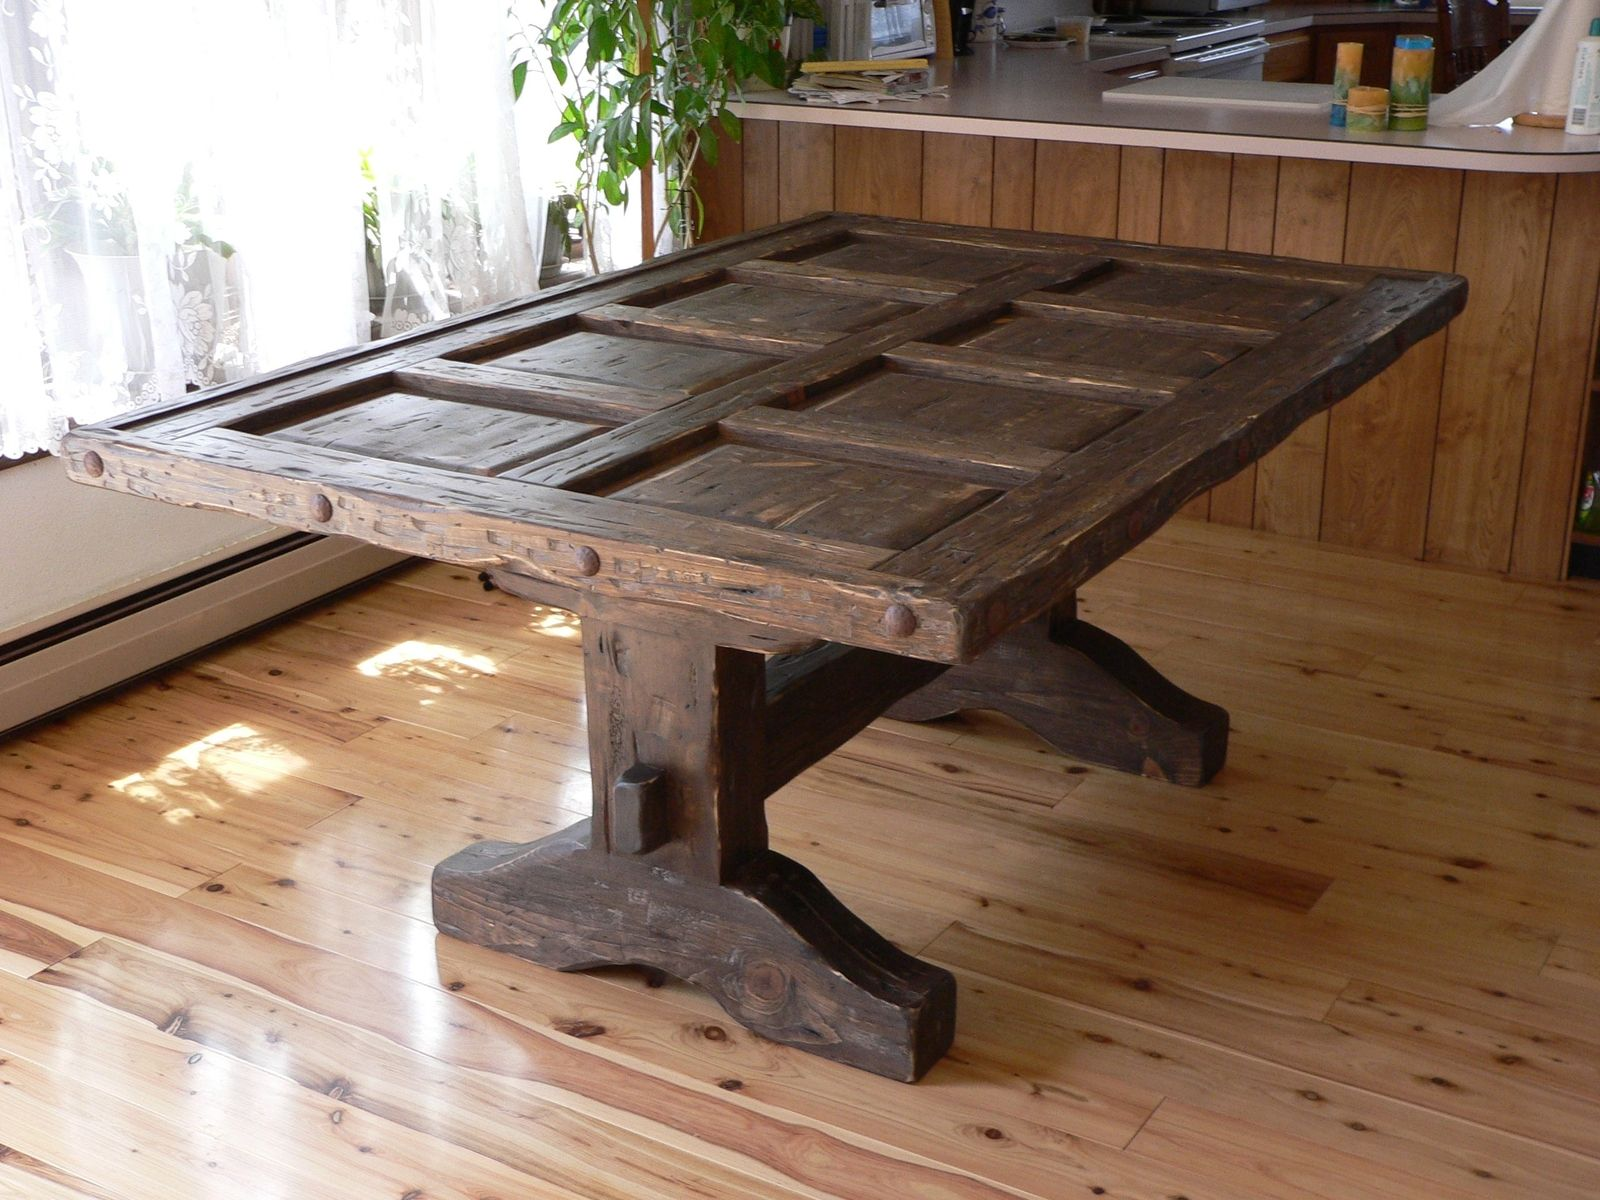 Custom Southwest Distressed Dining Room Table With Glass Top By - Distressed wood dining table with bench